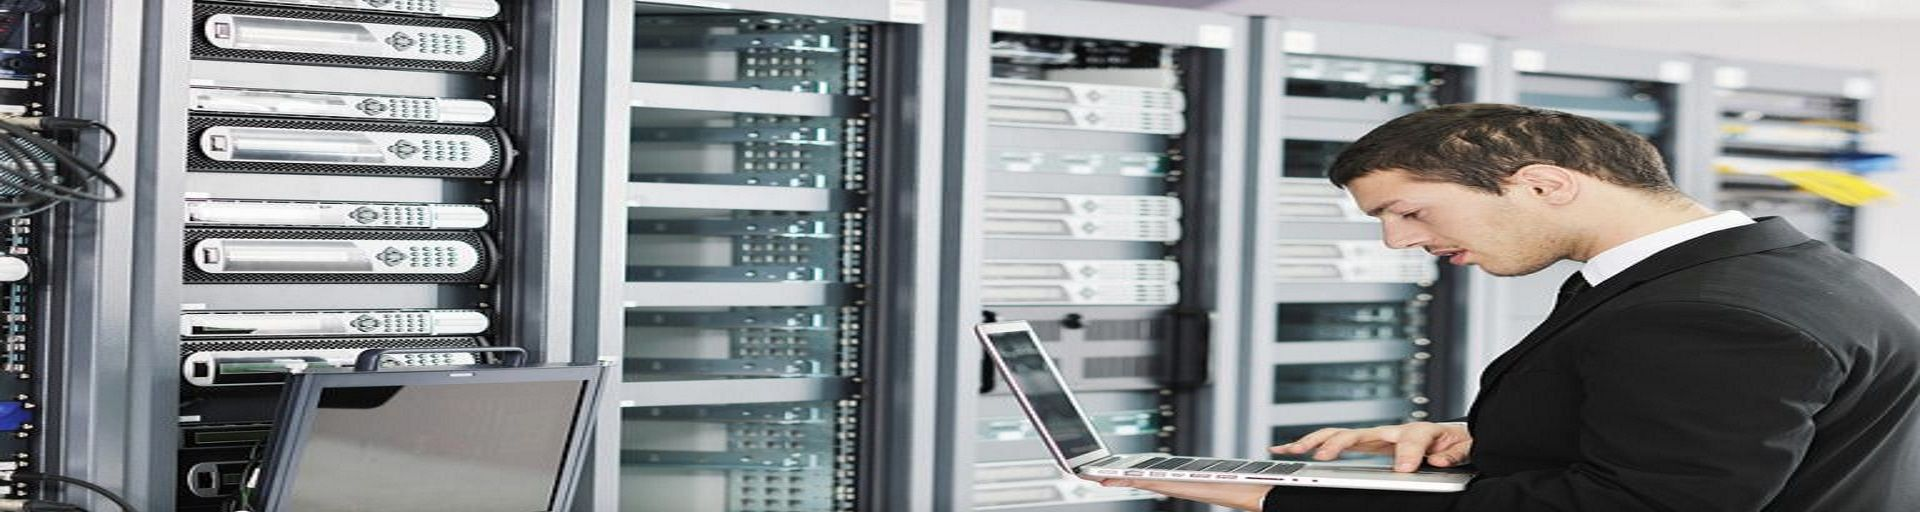 ERI offers both onsite and offsite data destruction so